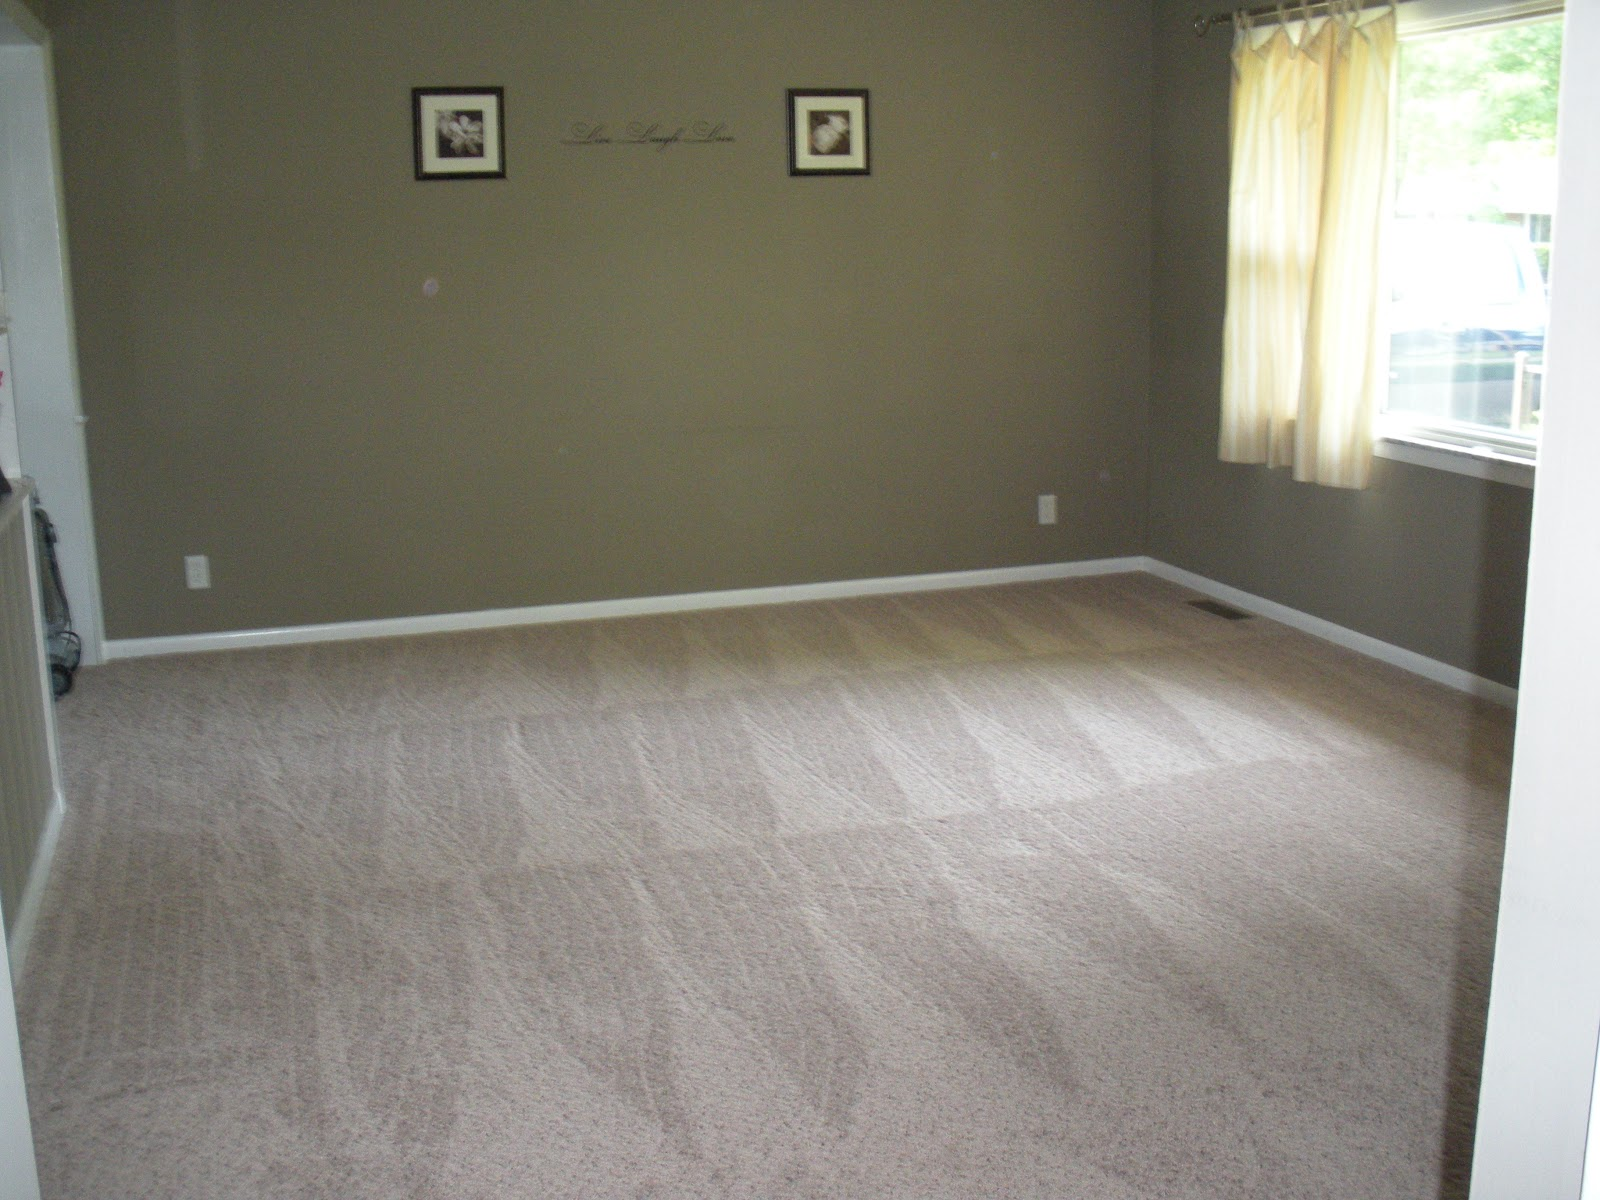 Empty living room with carpet - Here Are 2 Pictures Of Our Living Room It S Empty Because We Just Had New Carpet Was Installed